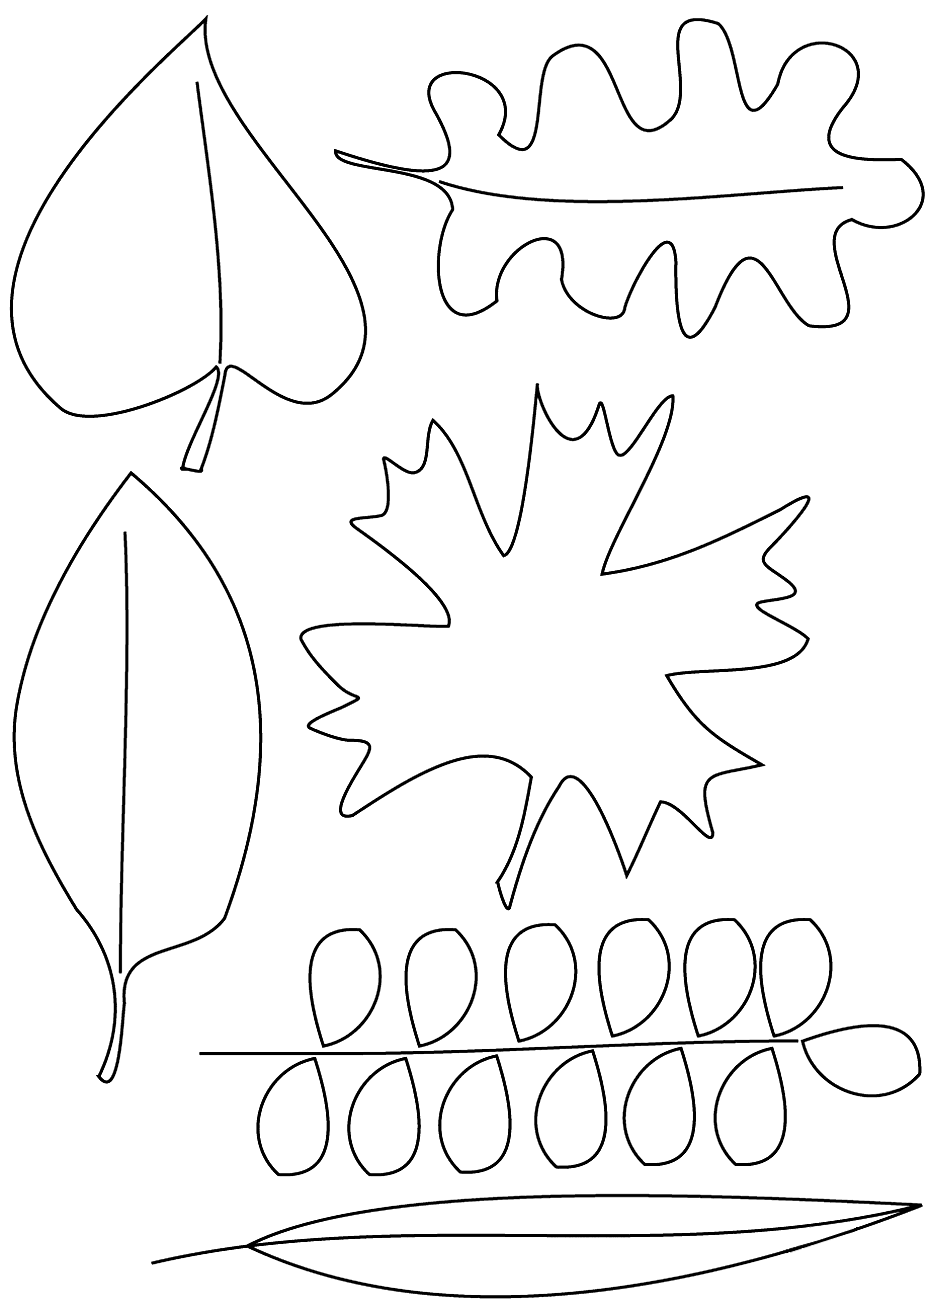 Types Of Fall Leaves Coloring Pgae coloring.rocks